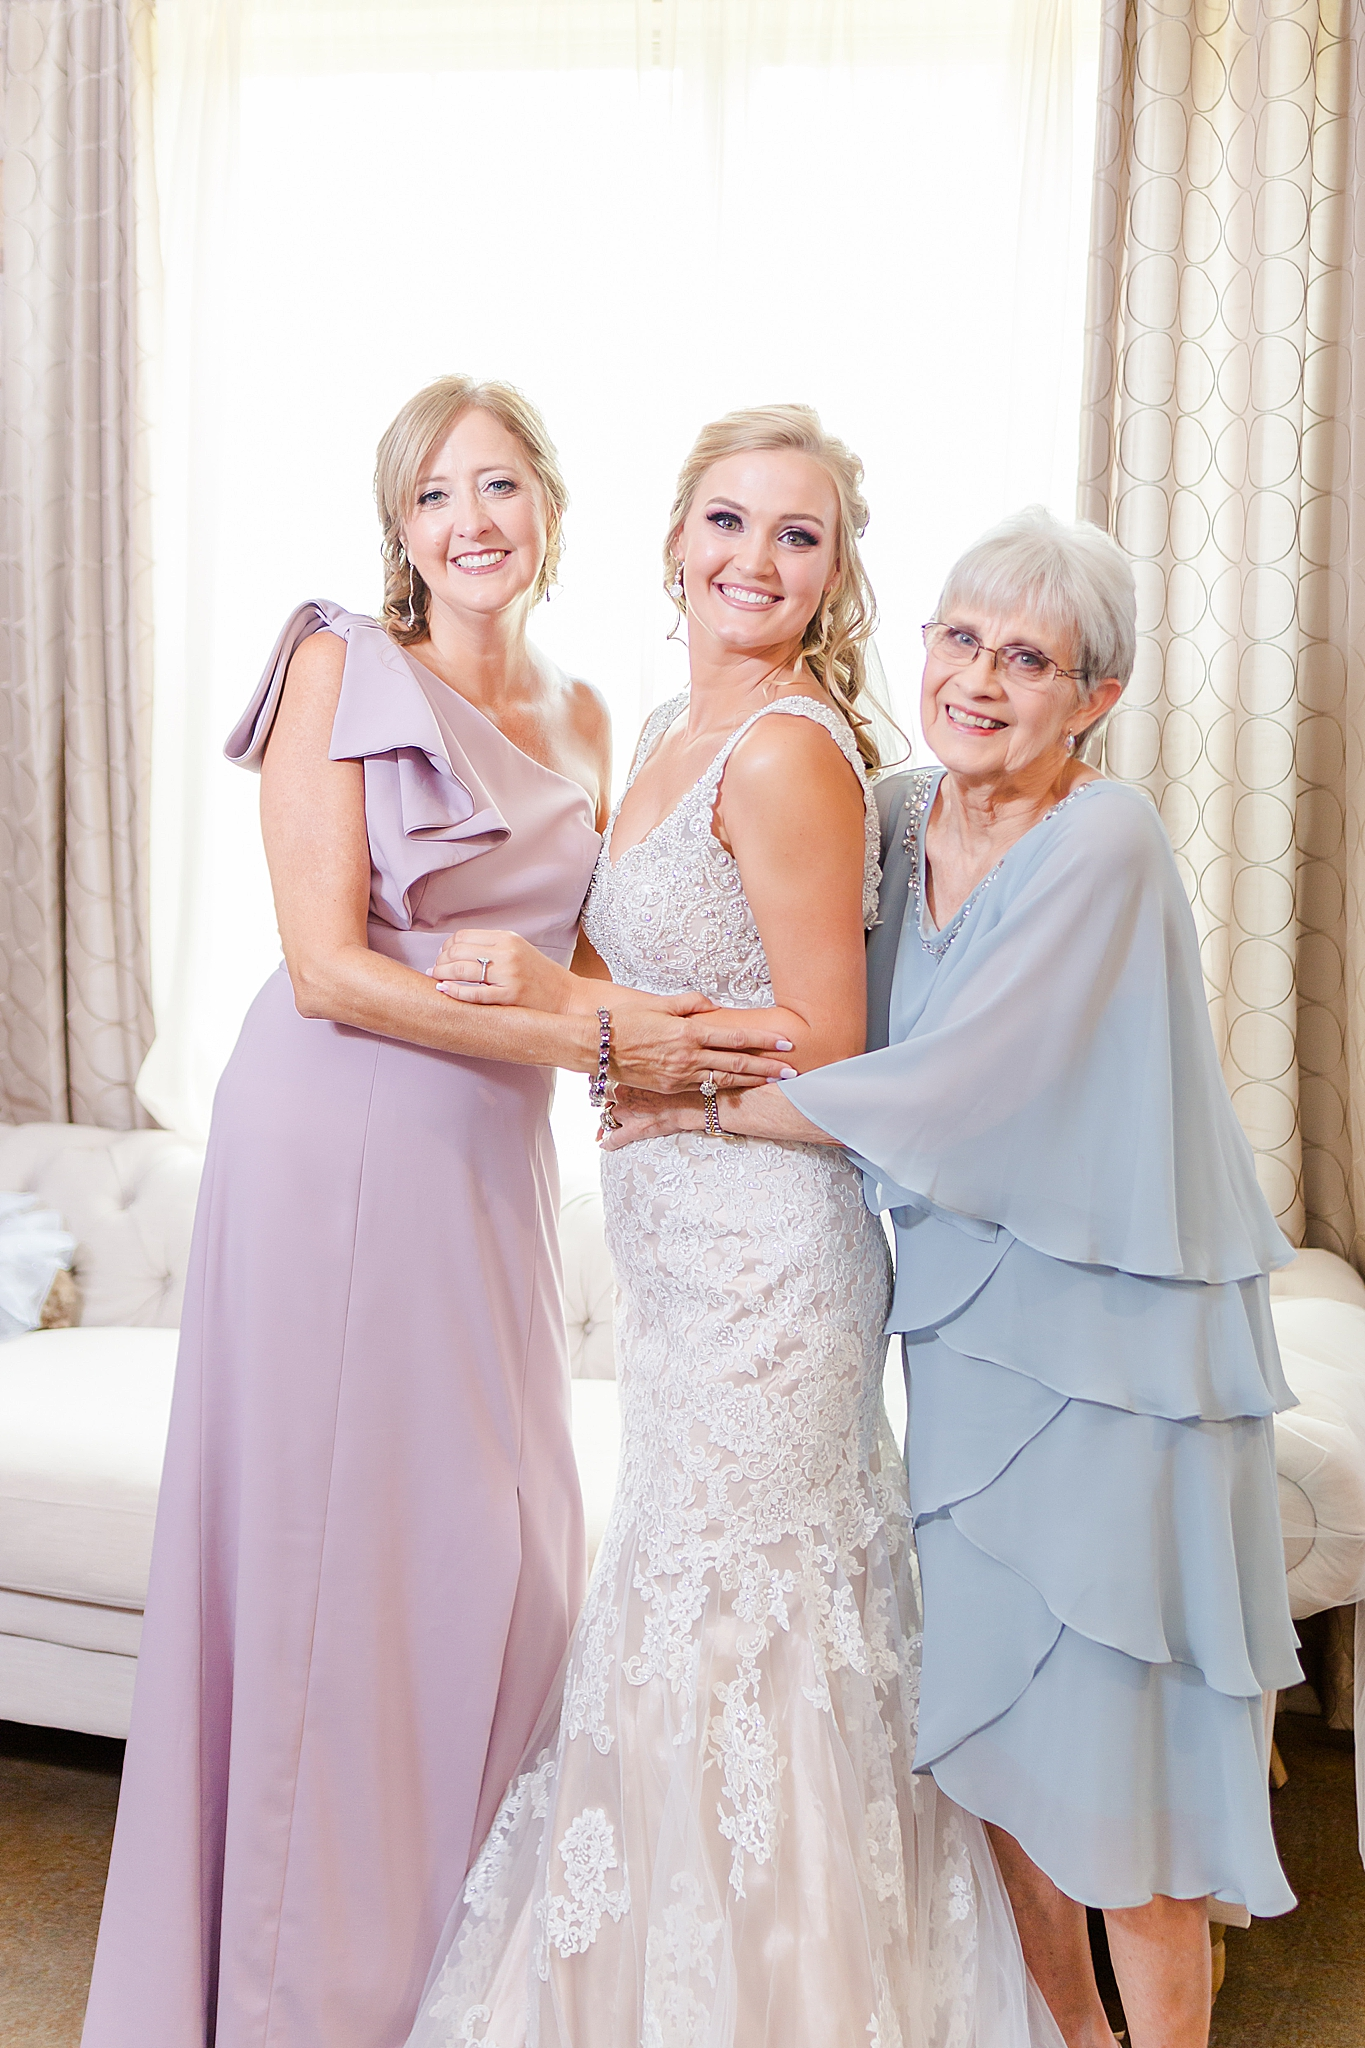 bride poses with grandmother and mother before Izenstone wedding day